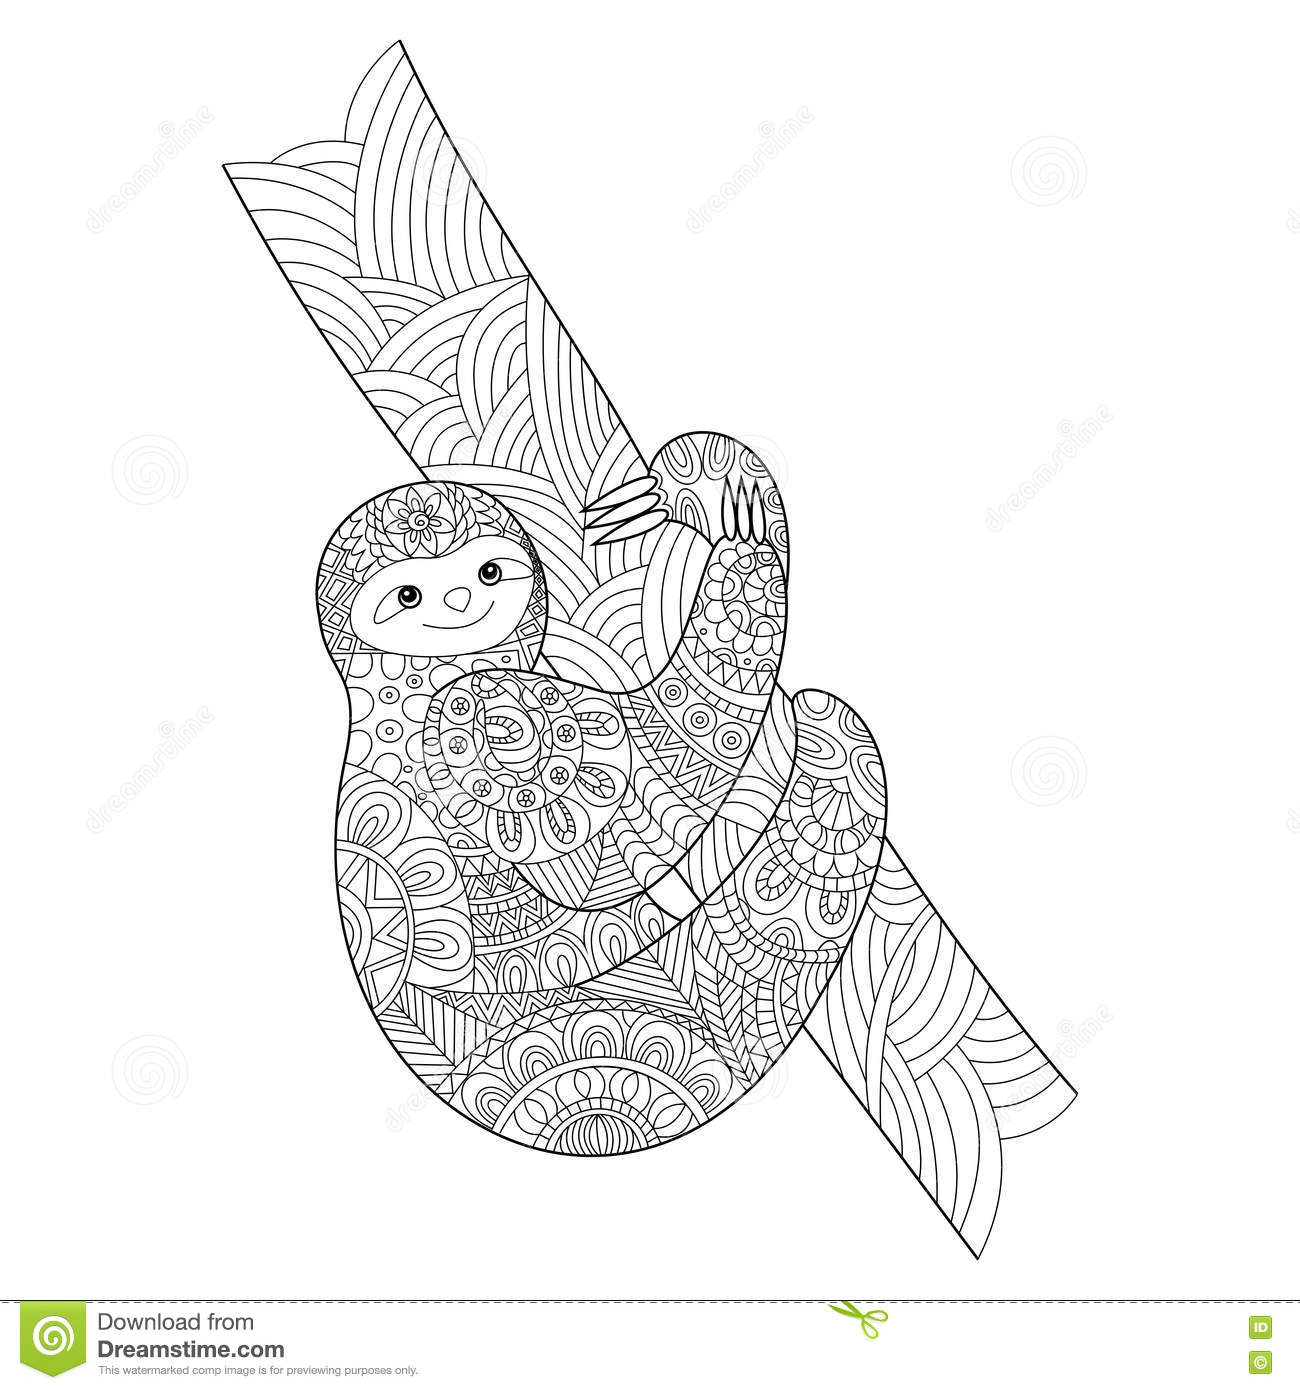 Lizards Coloring Pages also Kirby Coloring Pages Cute Hat additionally Coloring Pages Of Forest Home forest Animals Coloring Pages Forest Animals Coloring Page Forest Animals Coloring Pages Forest Animals Coloring Pages also Stock Illustration Sloth Coloring Book Adults Vector Illustration Image71913802 likewise Sloth Sketch 178565271. on sloth coloring pages for adults